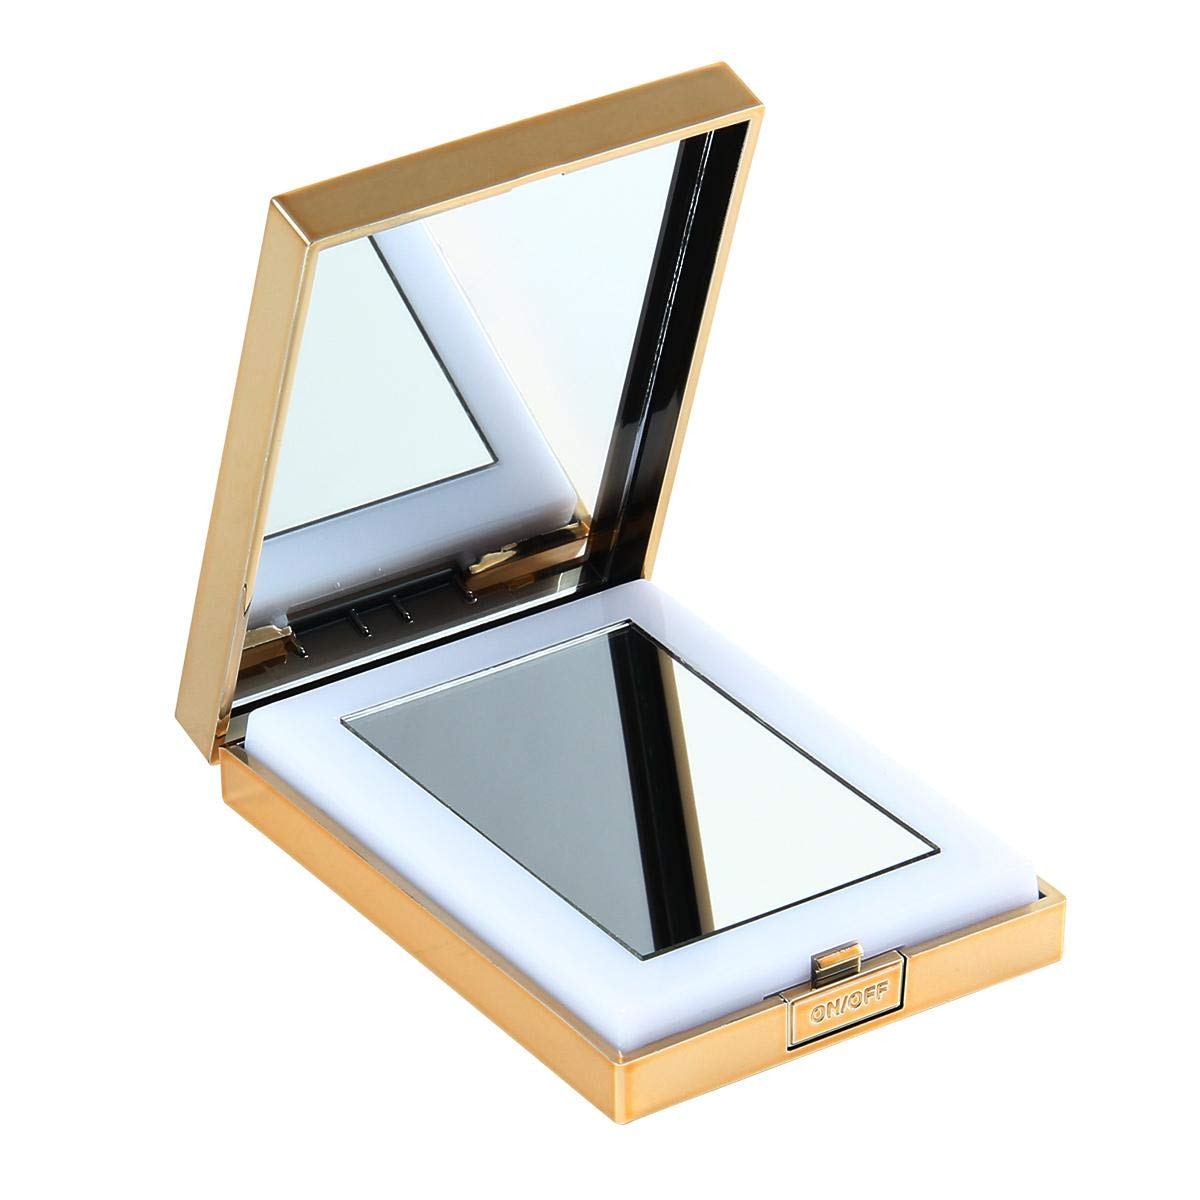 LED Lighted Travel Makeup Mirror, Small Handheld Mirror 1x/10x Magnifying Mirror Portable Travel Makeup Mirror Lighted Magnified Mirror Magnifying Illuminated Mirror Folding(Black Gold) FOONEE